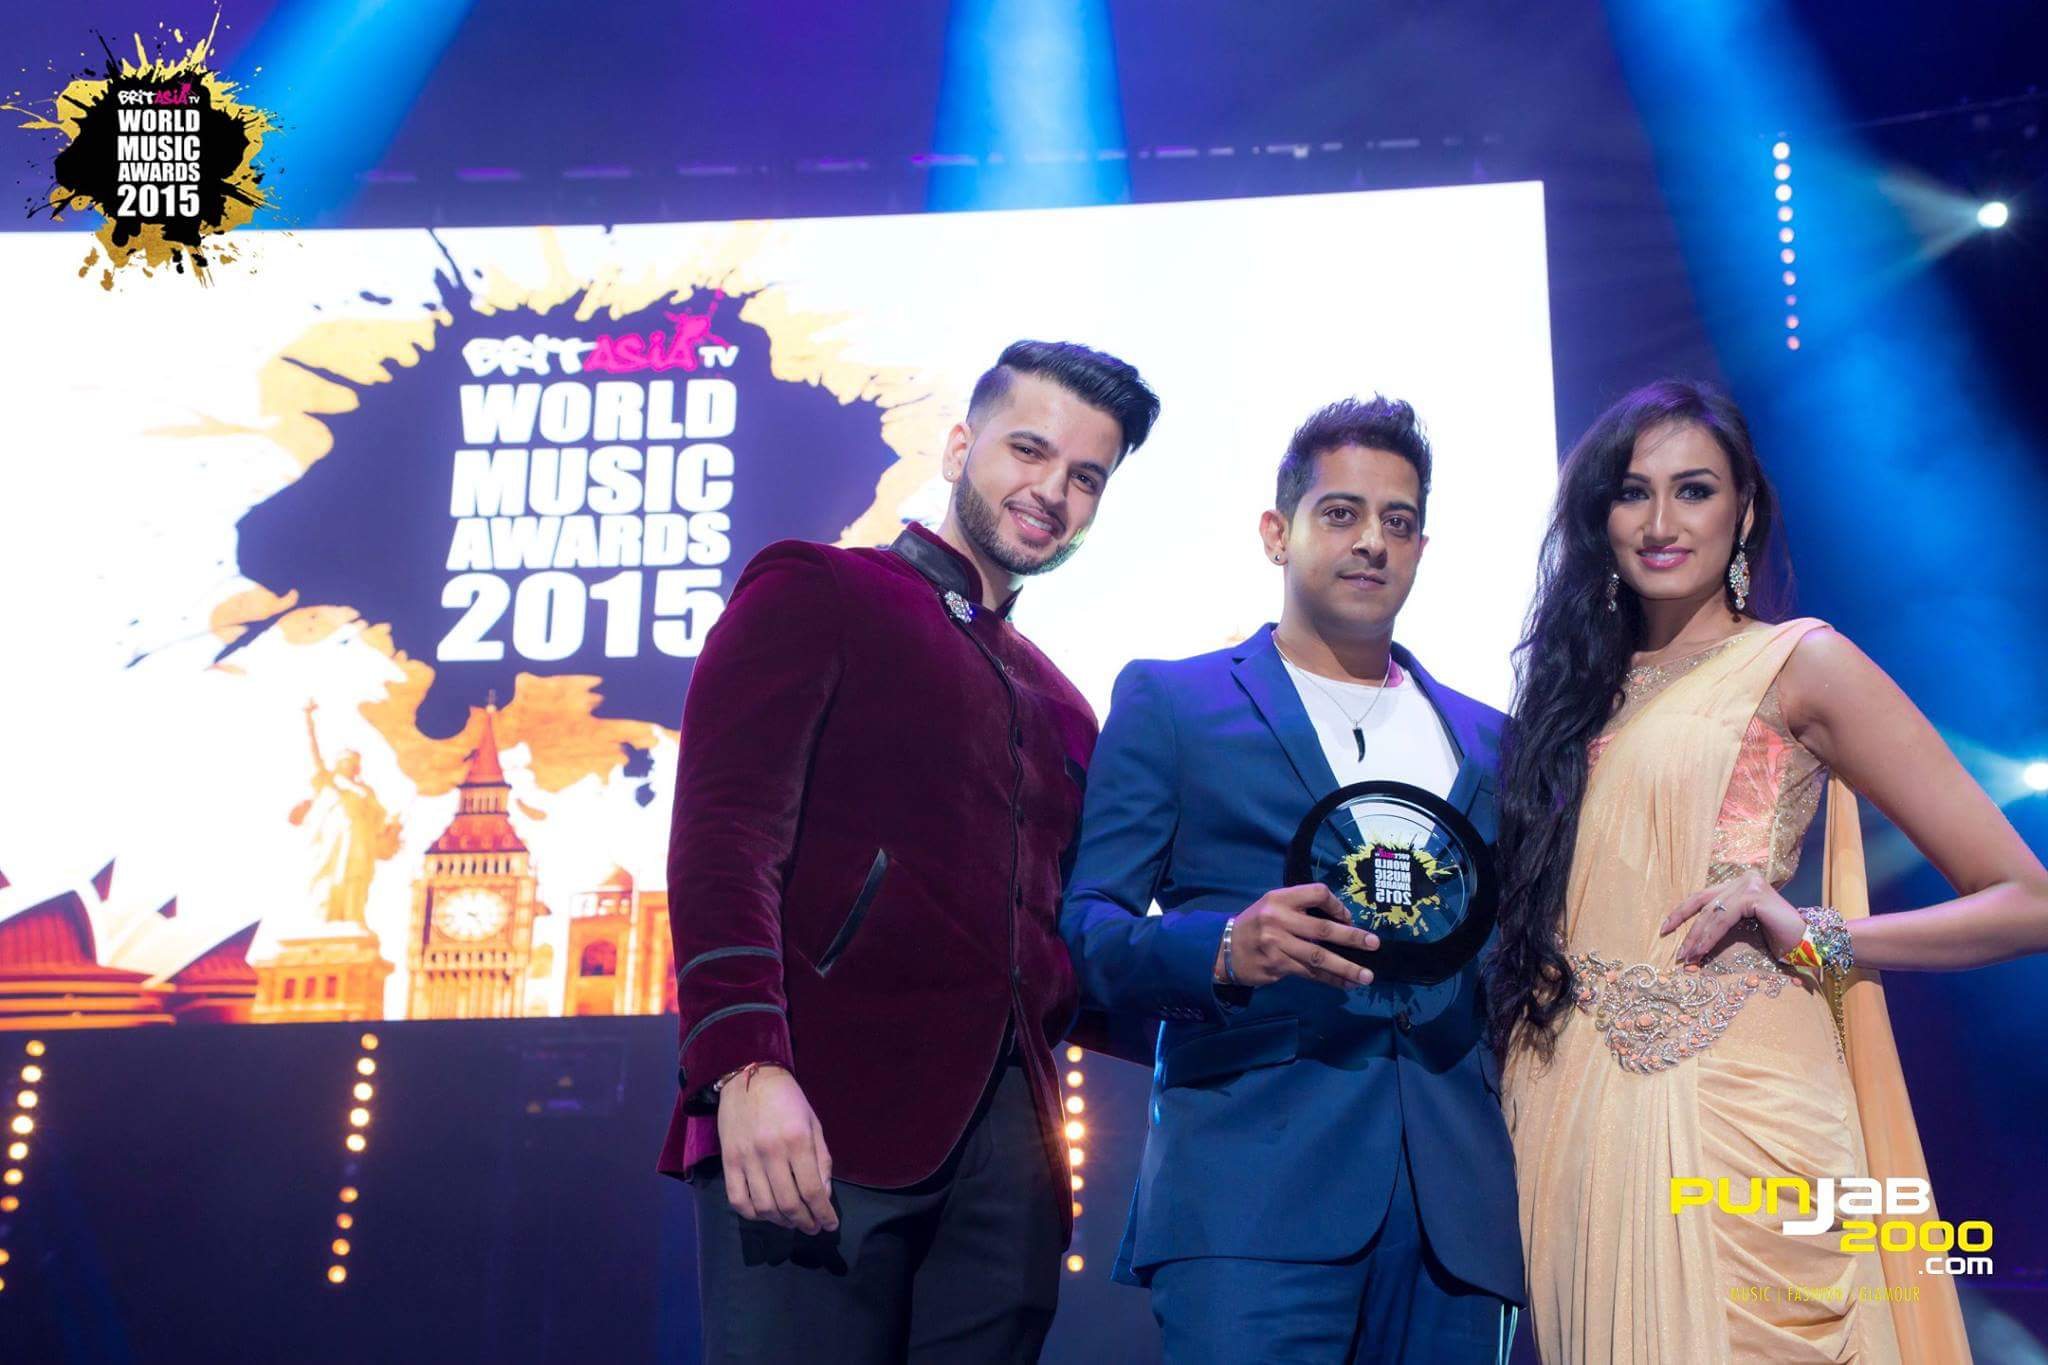 DJ Vix winning best album at BritAsia TV World Music Awards 2015